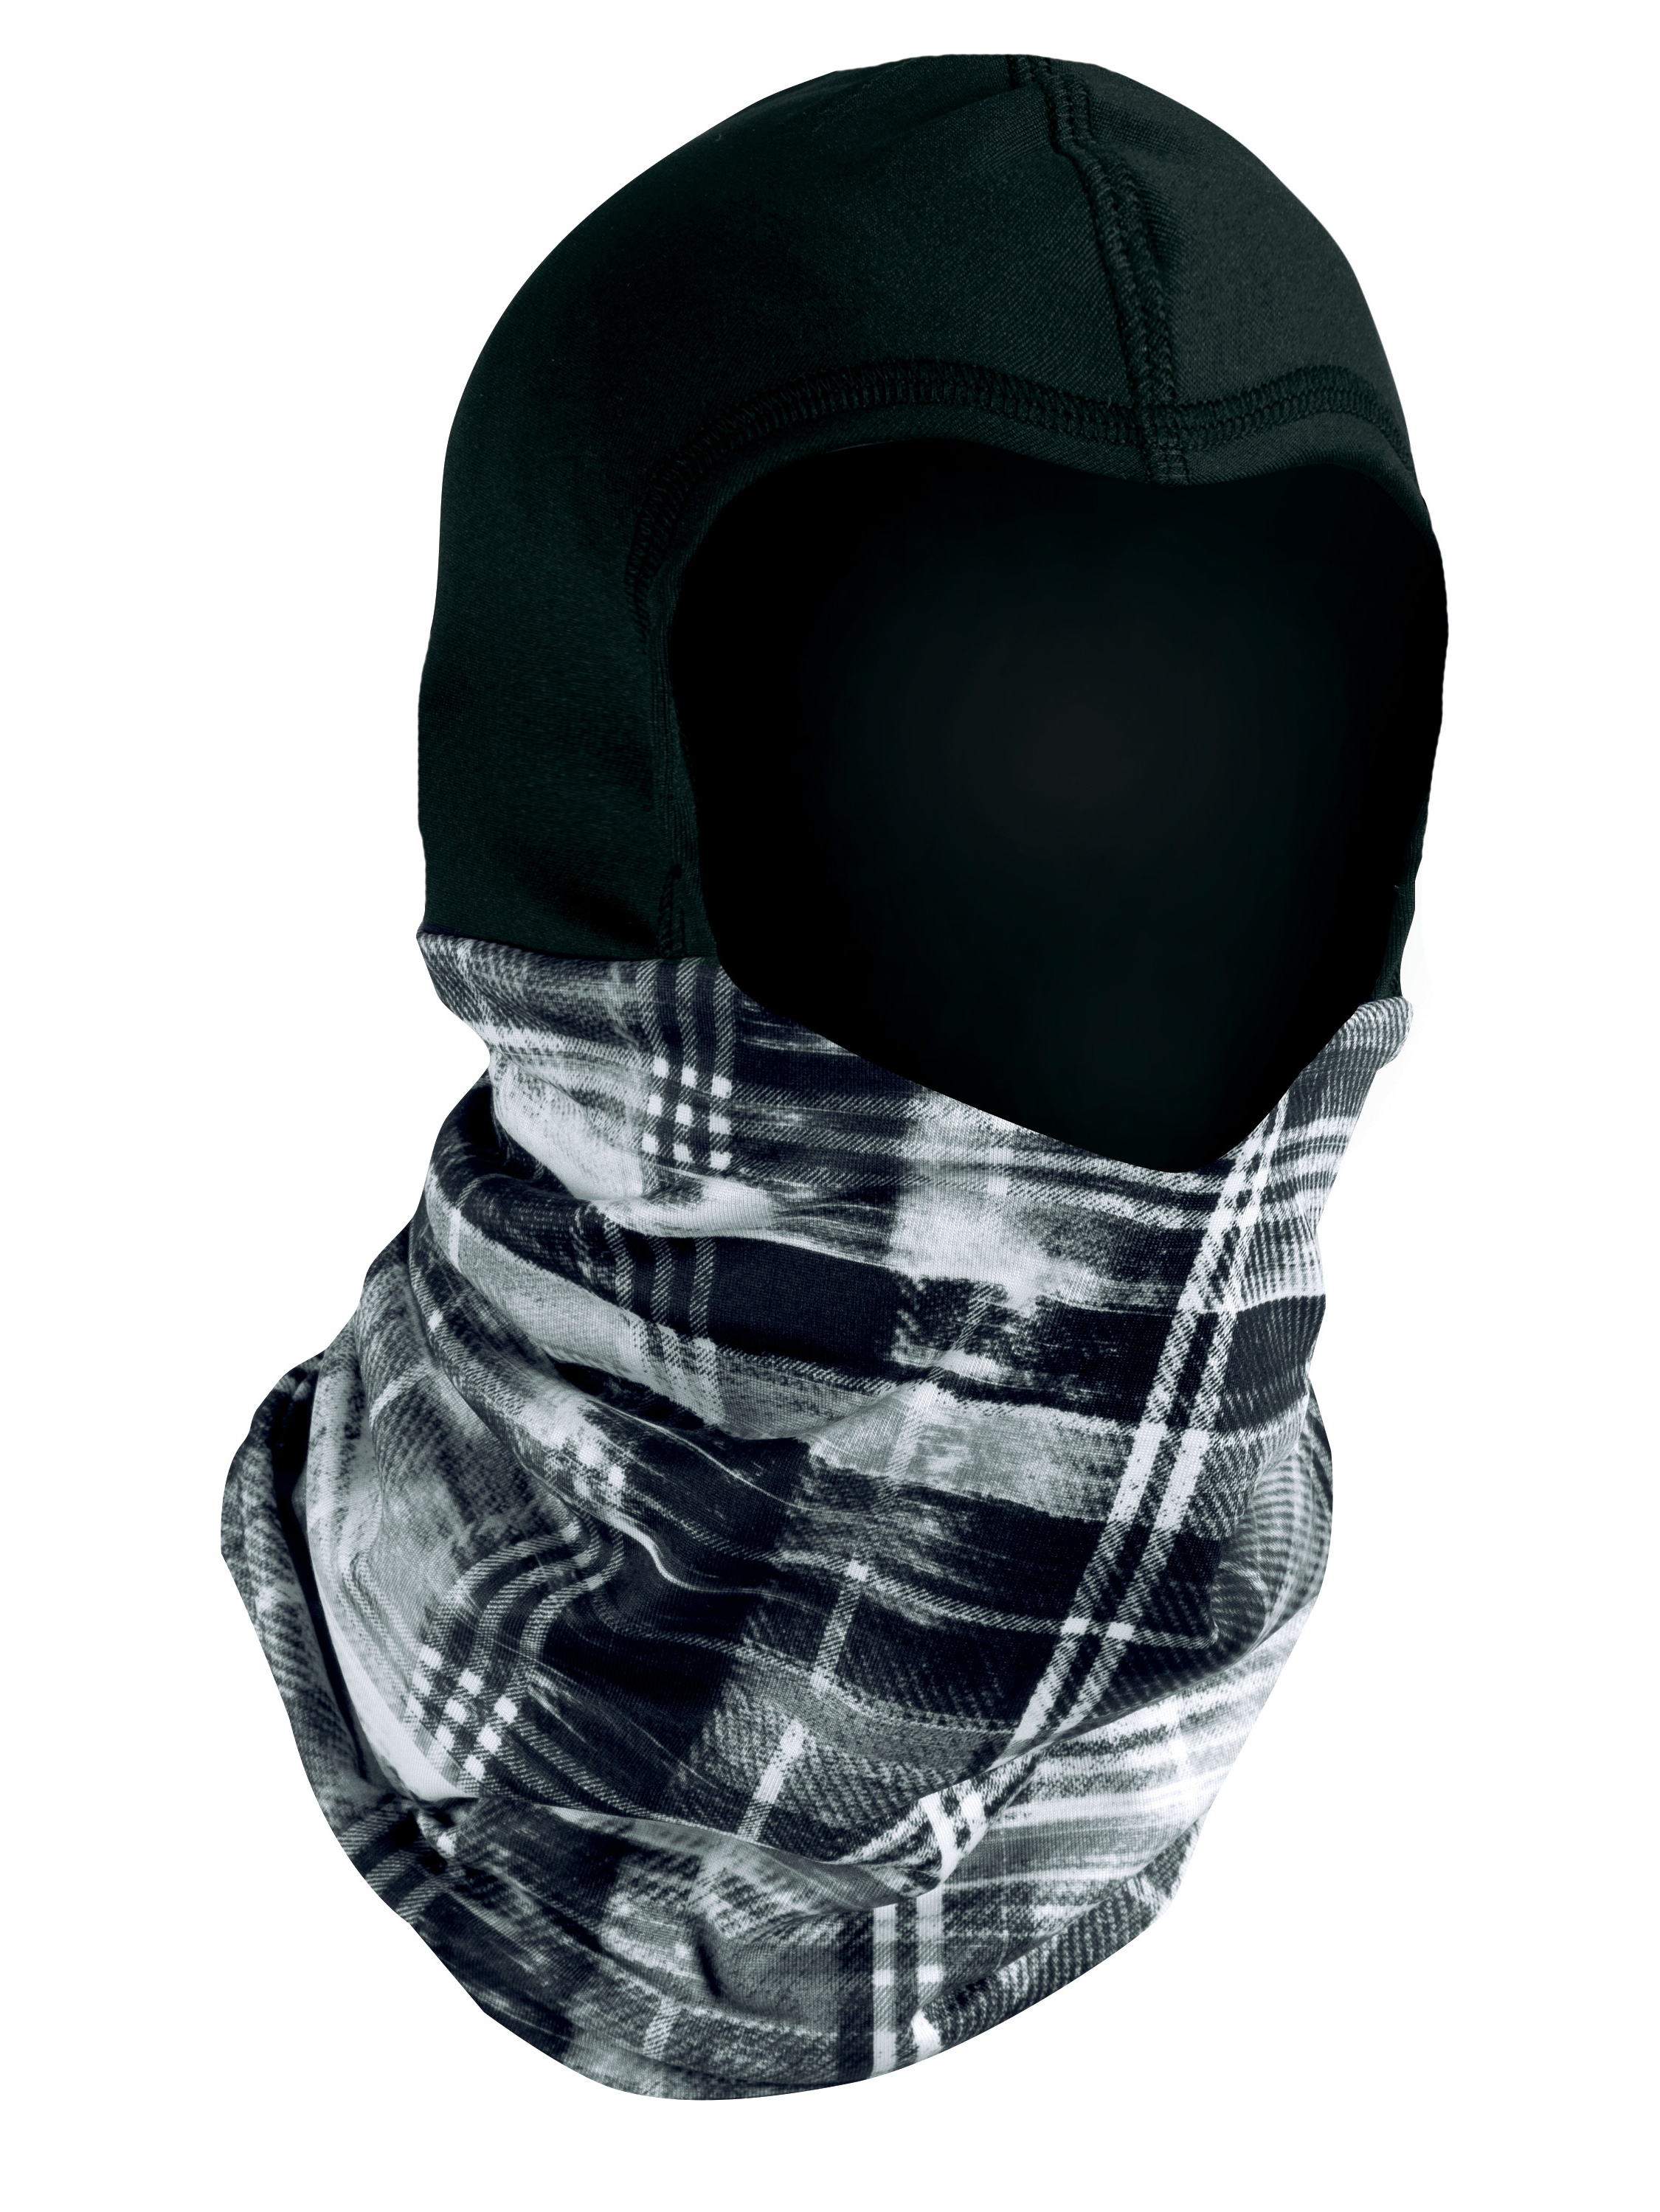 Turtle Fur Shellaclava, Comfort Shell Balaclava Hood and Face Mask with Fleece Lined Neck Warmer by Turtle Fur